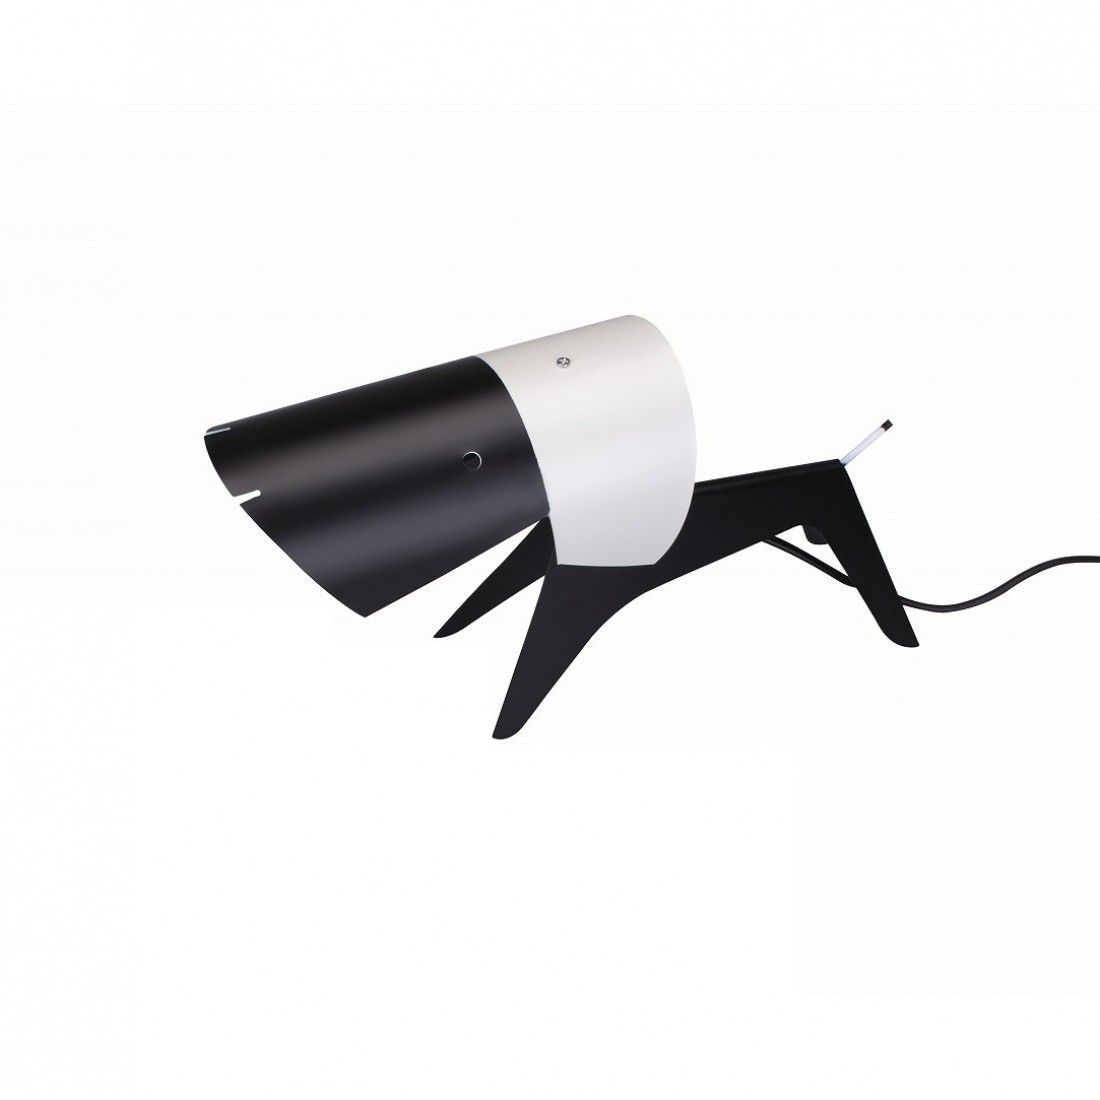 Dog Lamp inspired by Jean Boris LaCroix - This little metal dog sculpture is as much a piece of art as it is a functional desk lamp. The design is a reproduction of Jean Boris LaCroix's Mid-Century Modern Dog Lamp design from the 1950's.